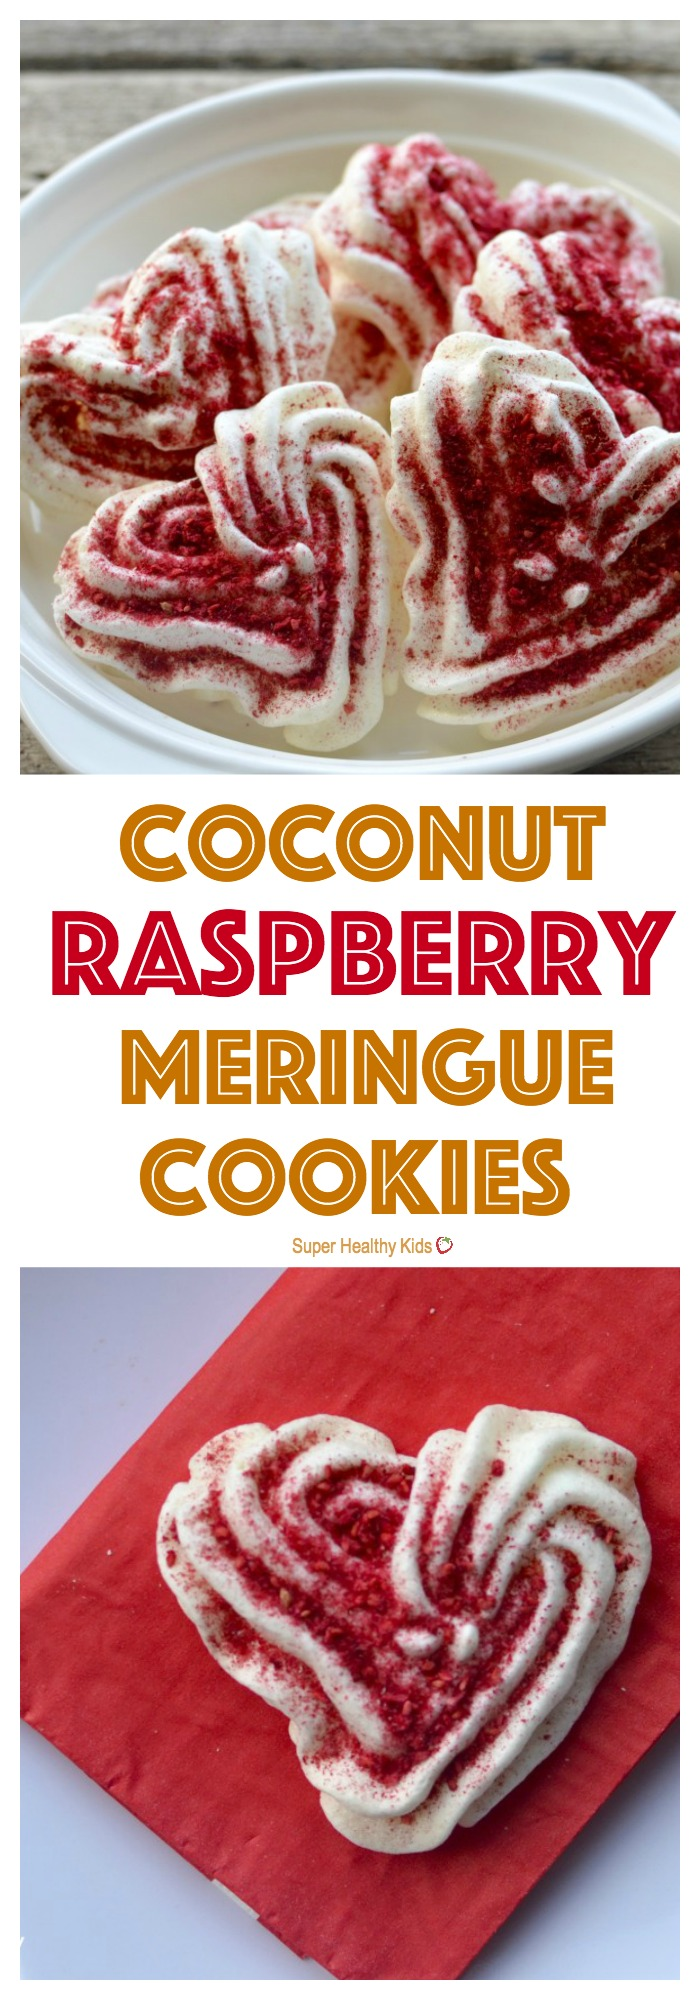 FOOD - Coconut Raspberry Meringue Cookies. Light and fluffy meringue cookies that melt in your mouth! http://www.superhealthykids.com/coconut-raspberry-meringue-cookies/